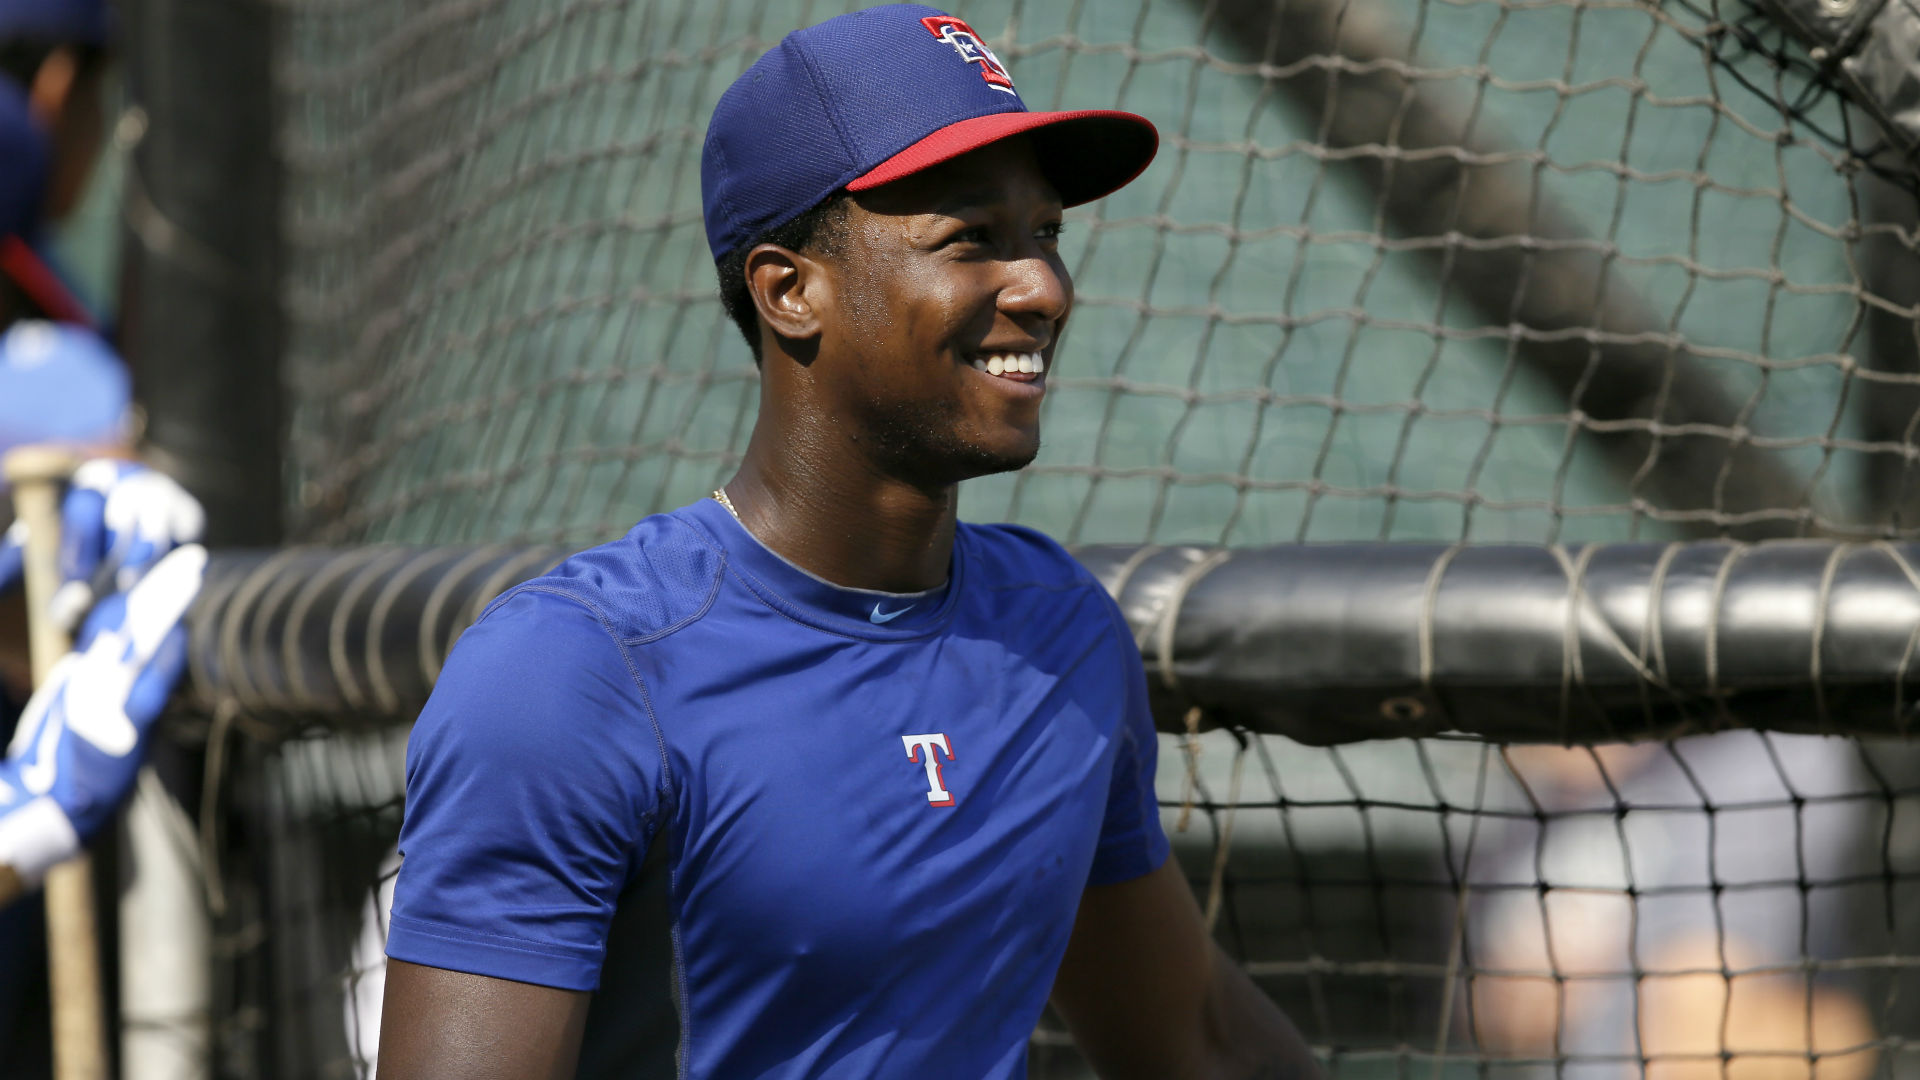 Fantasy baseball sleeper: Rangers' Profar falling too far in drafts